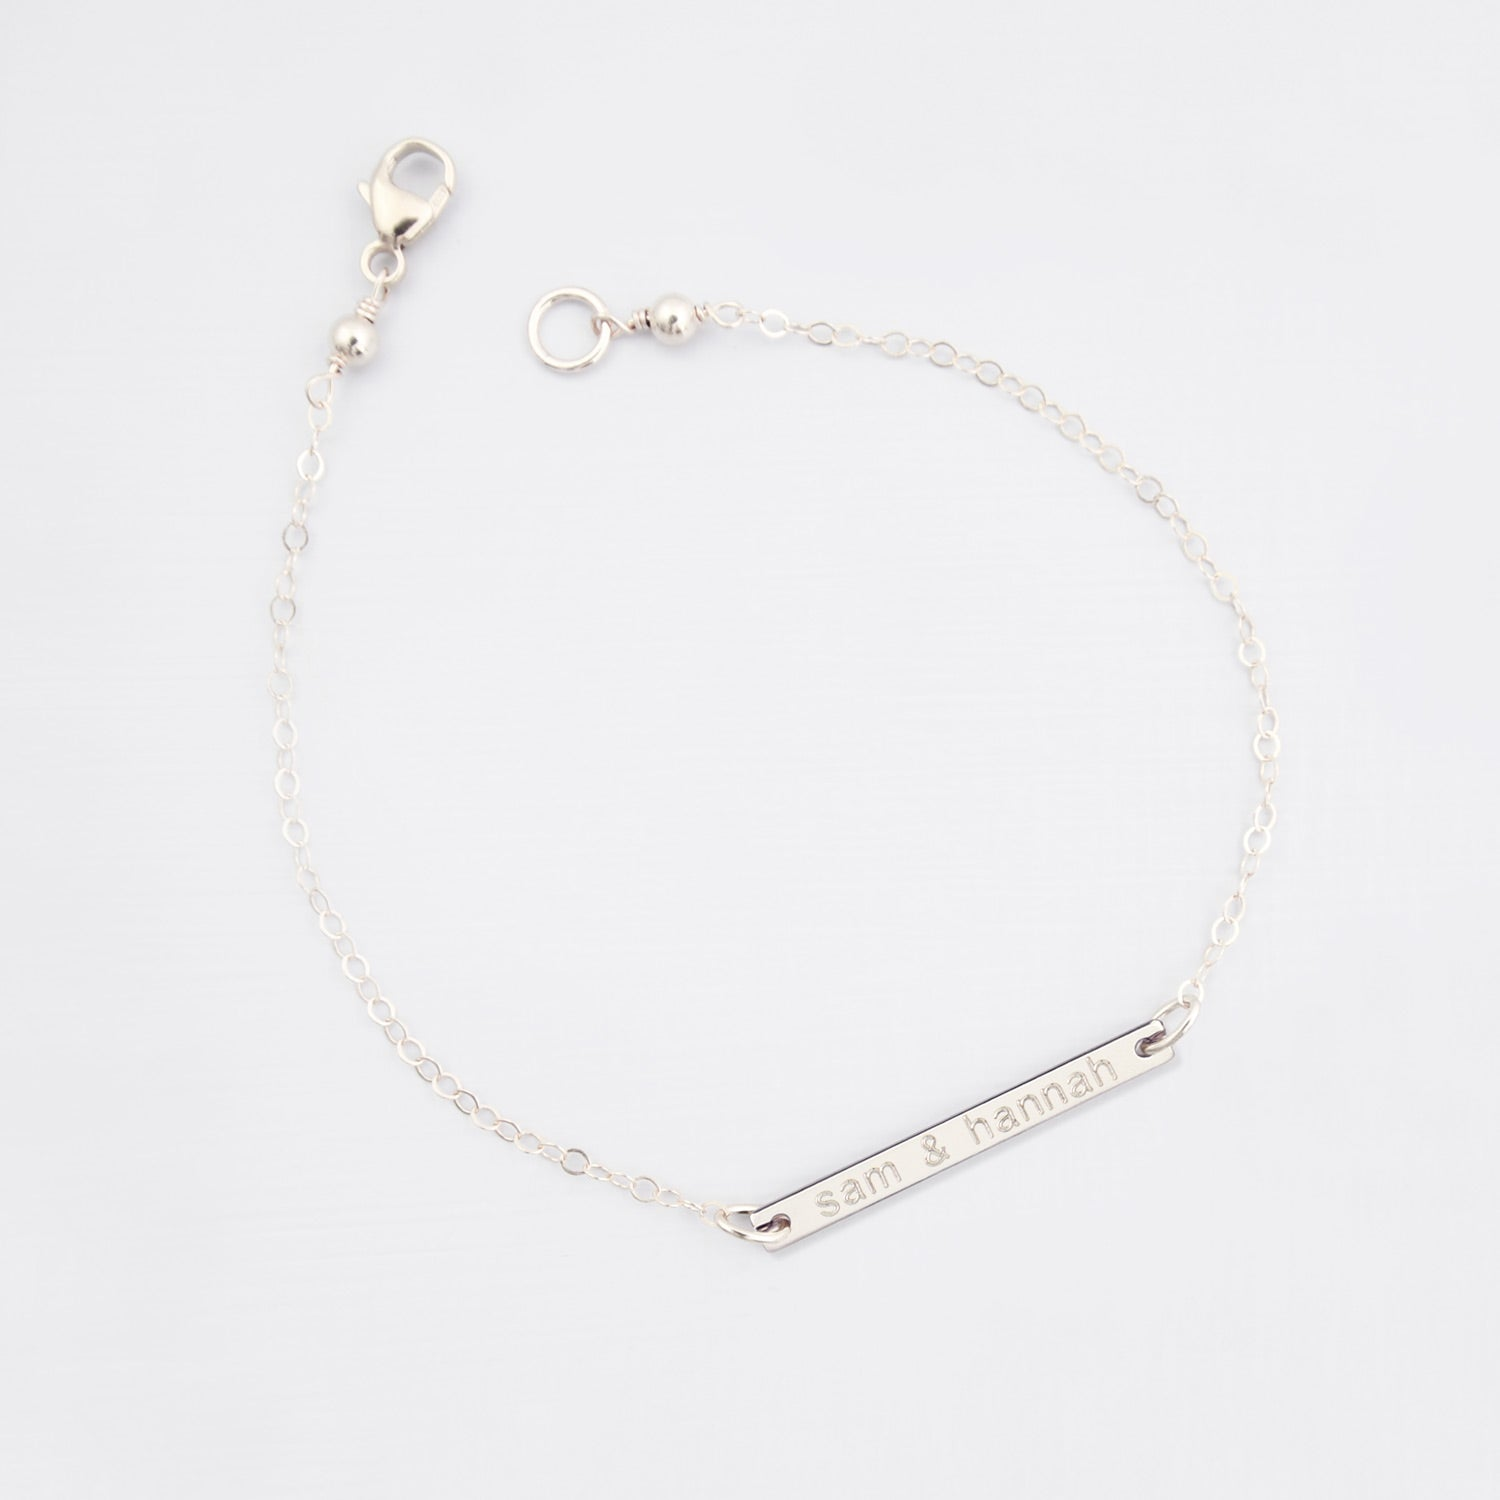 Personalised bar 'love' bracelet 'Leonie'